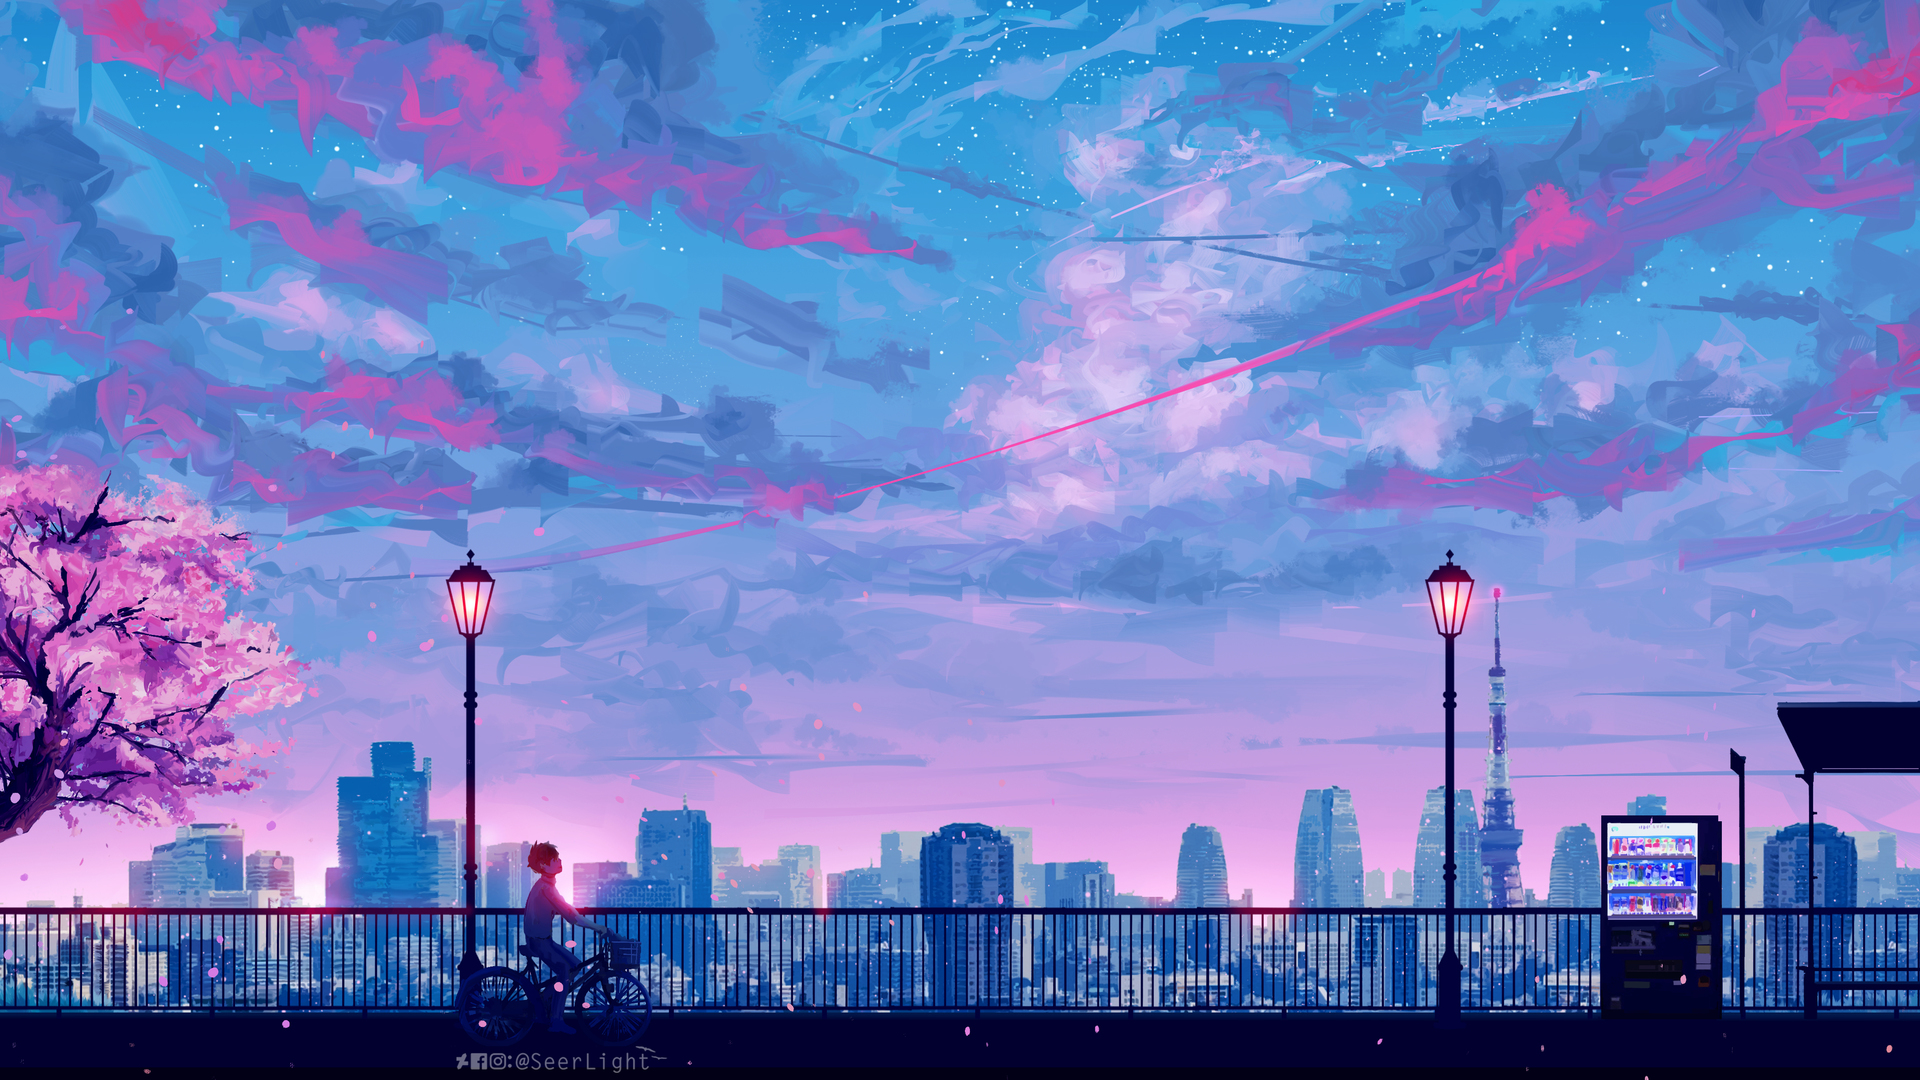 90s Anime Aesthetic Background Posted By John Walker